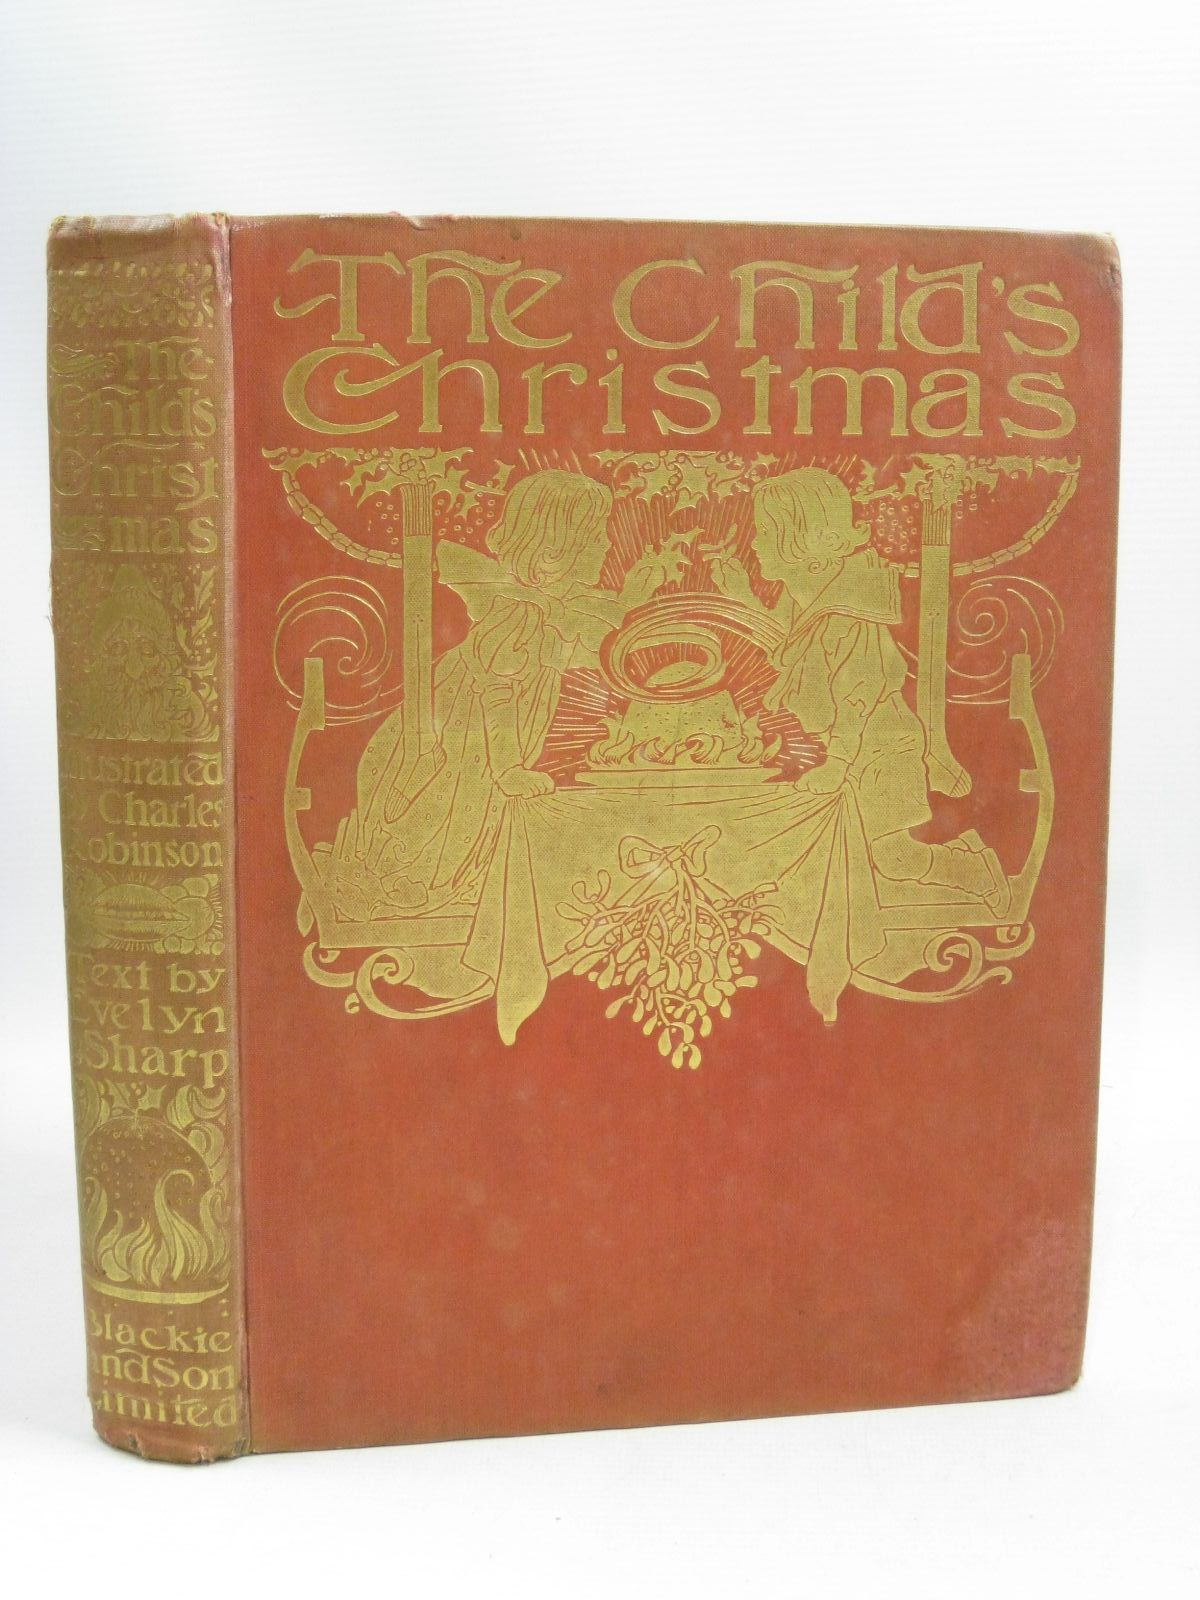 Photo of THE CHILD'S CHRISTMAS written by Sharp, Evelyn illustrated by Robinson, Charles published by Blackie & Son Ltd. (STOCK CODE: 1405238)  for sale by Stella & Rose's Books